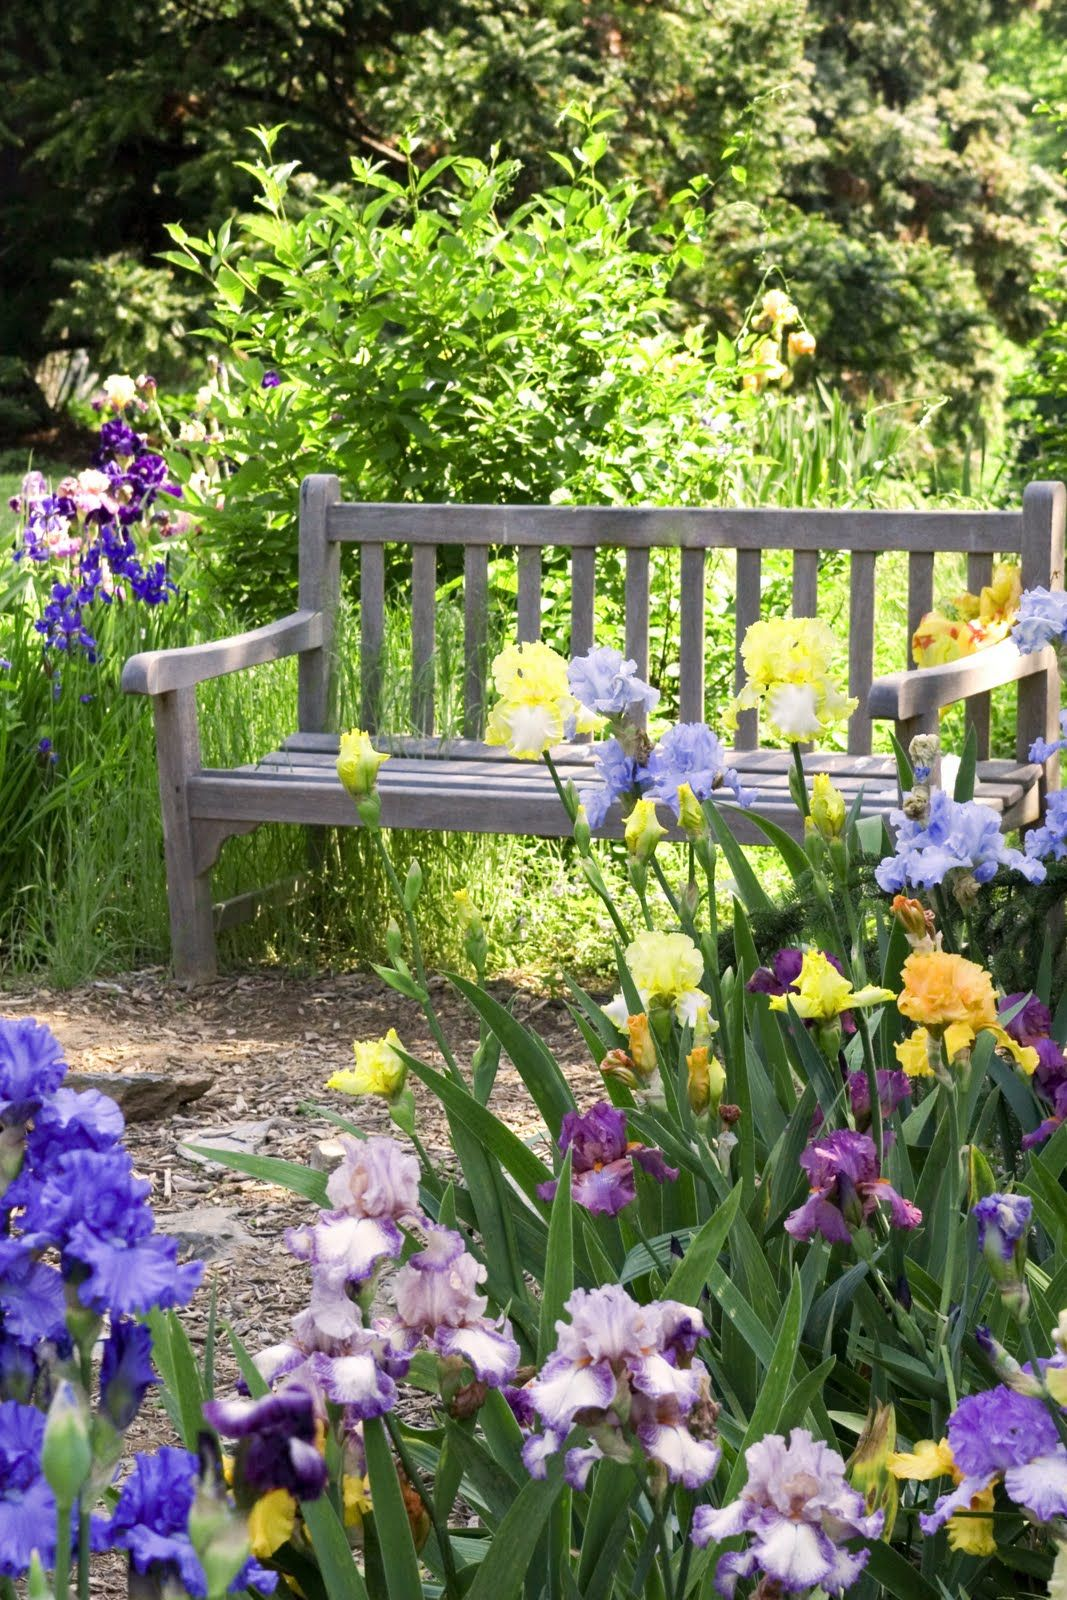 I Like The Idea Of Having A Bench One Day In A Relaxing Garden. I